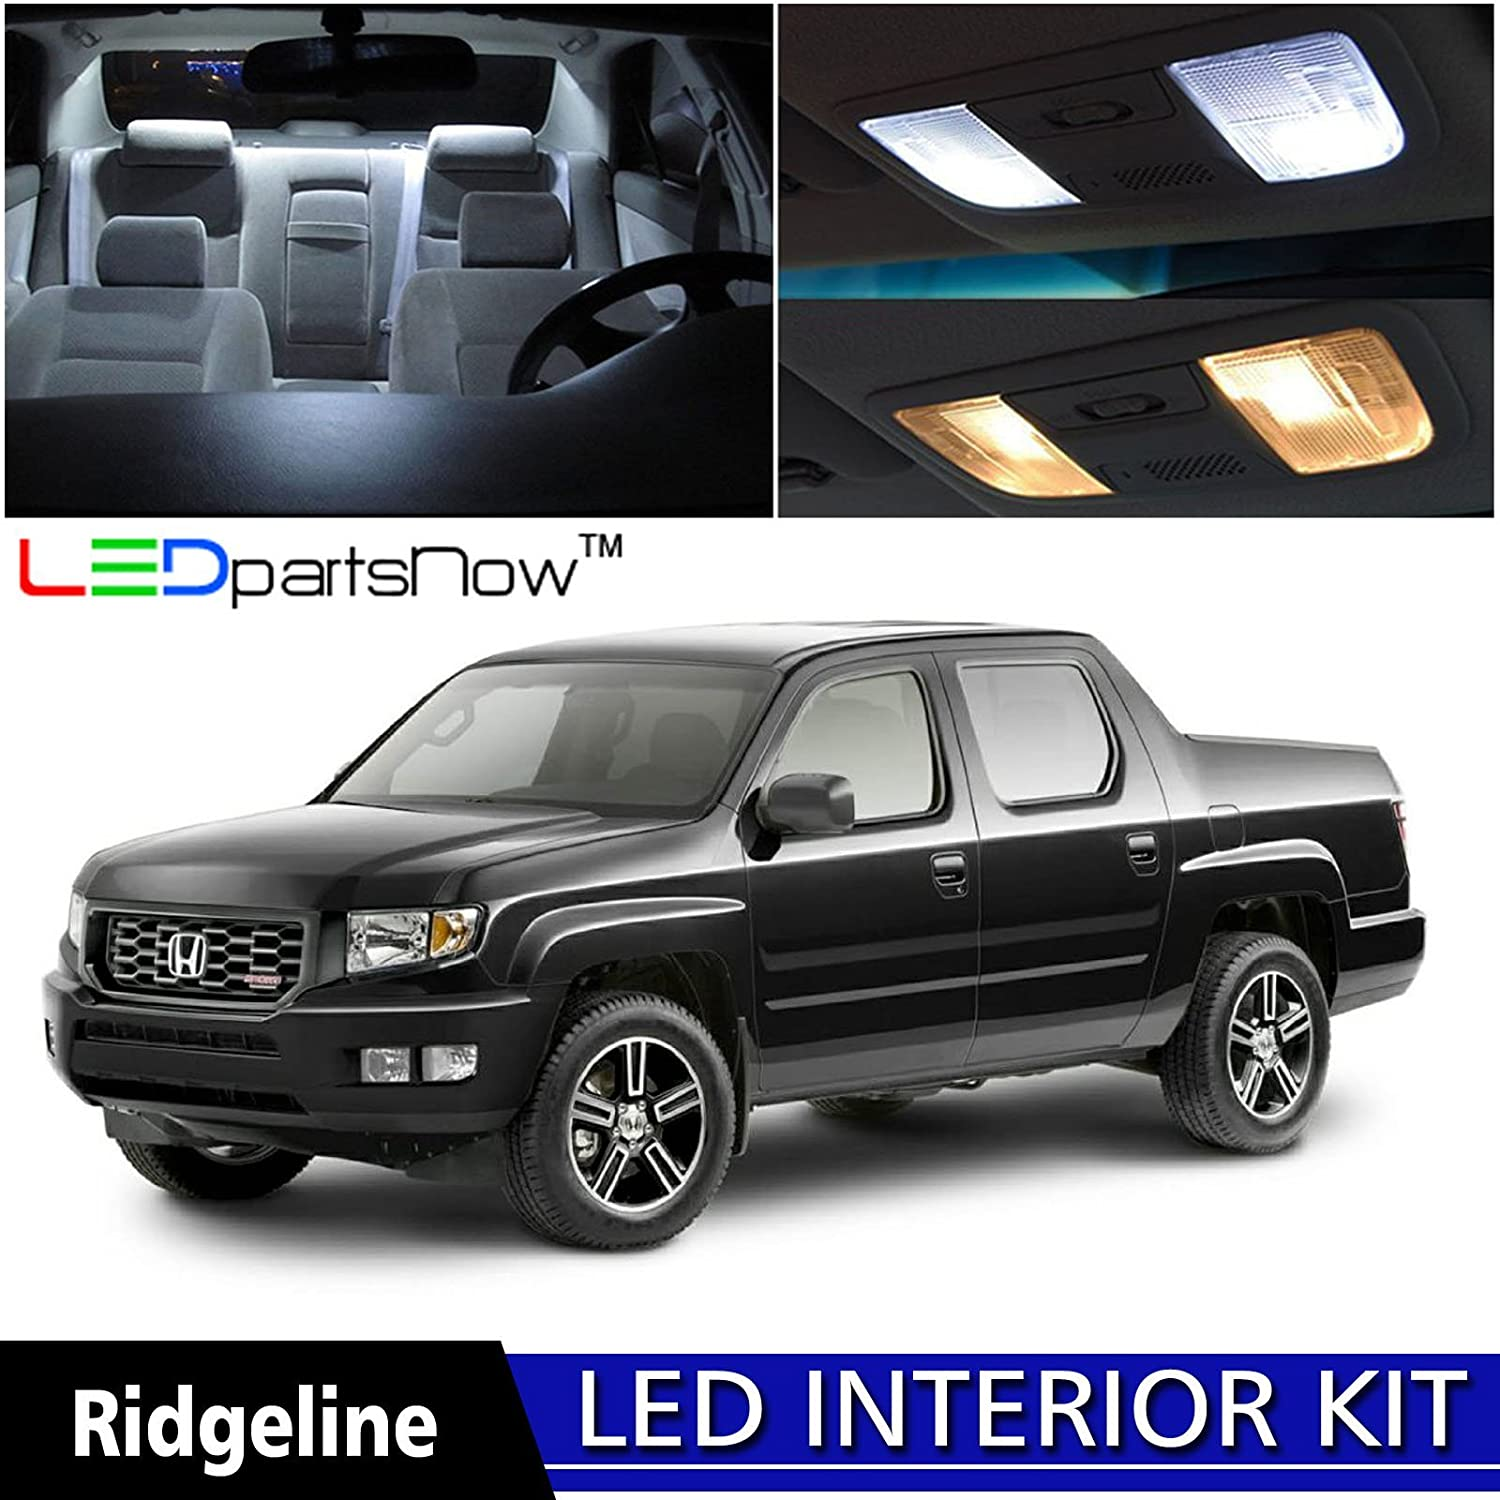 2006 Honda Ridgeline Fuse Box Back Seat Accessories 51 Wiring 2013 Dodge Dart F 84 Sl1500 Amazon Com Ledpartsnow 2014 Led Interior